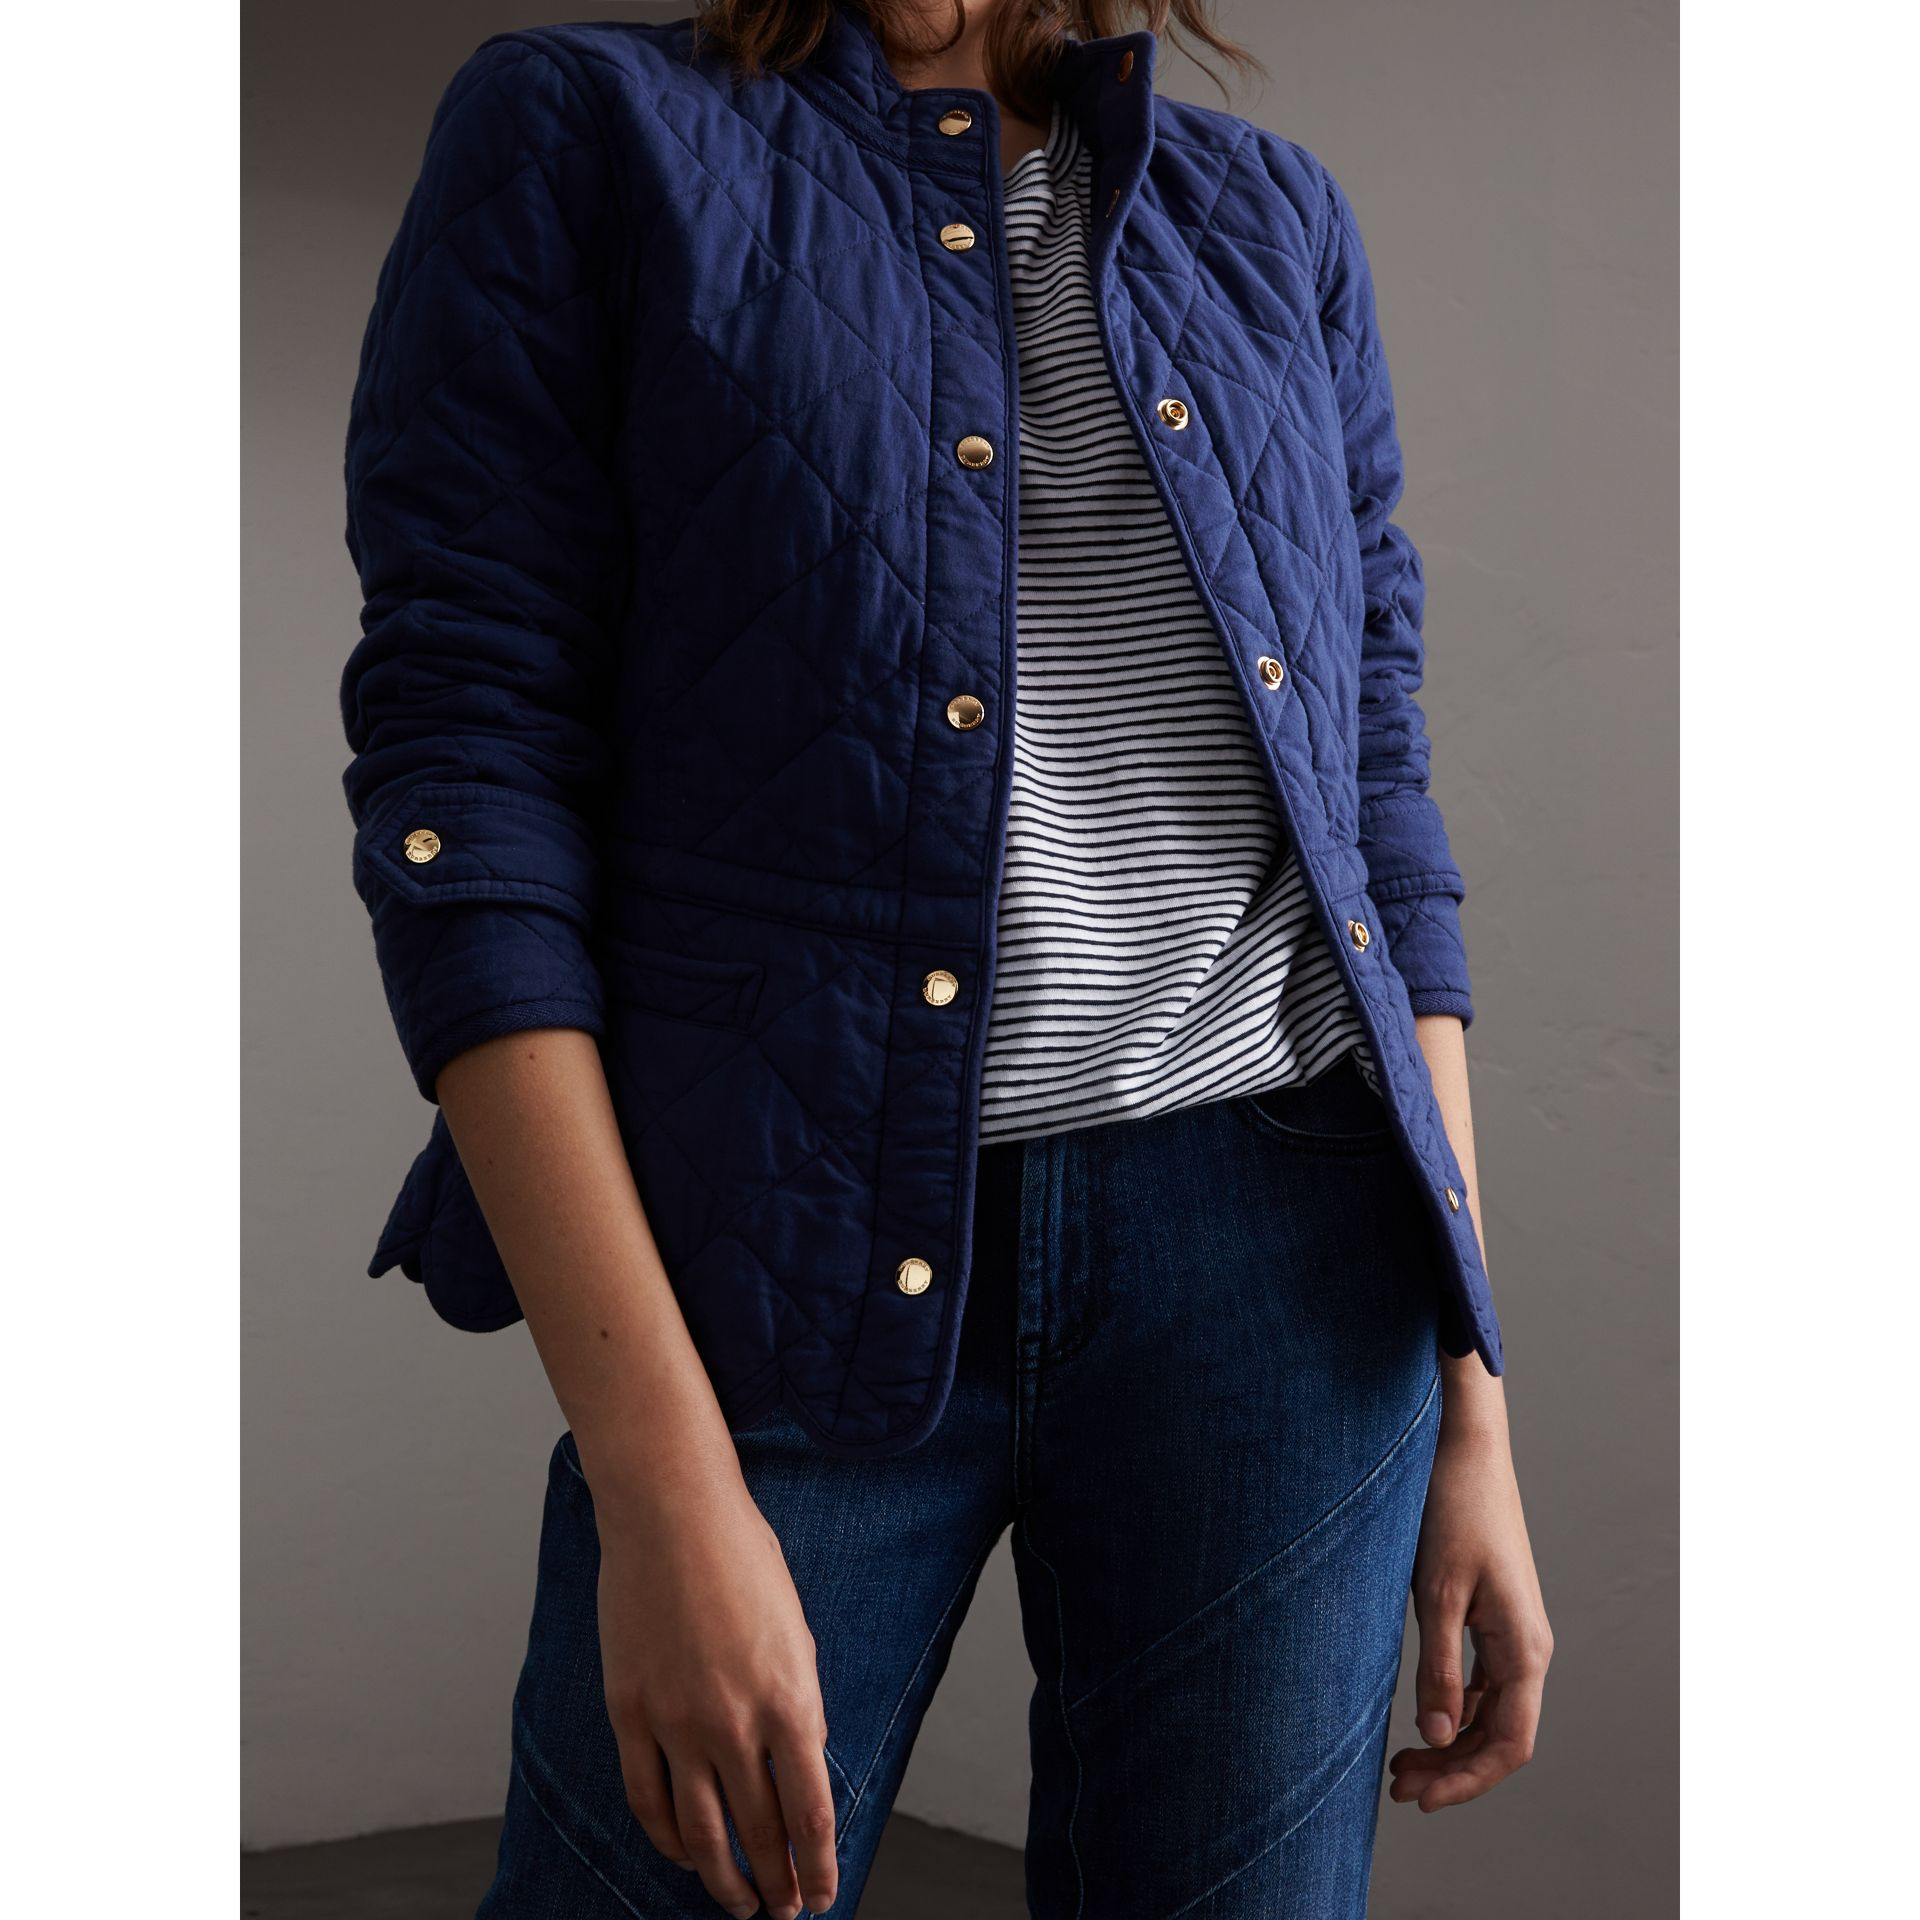 Scalloped Diamond Quilted Cotton Jacket in Indigo - Women | Burberry Australia - gallery image 5